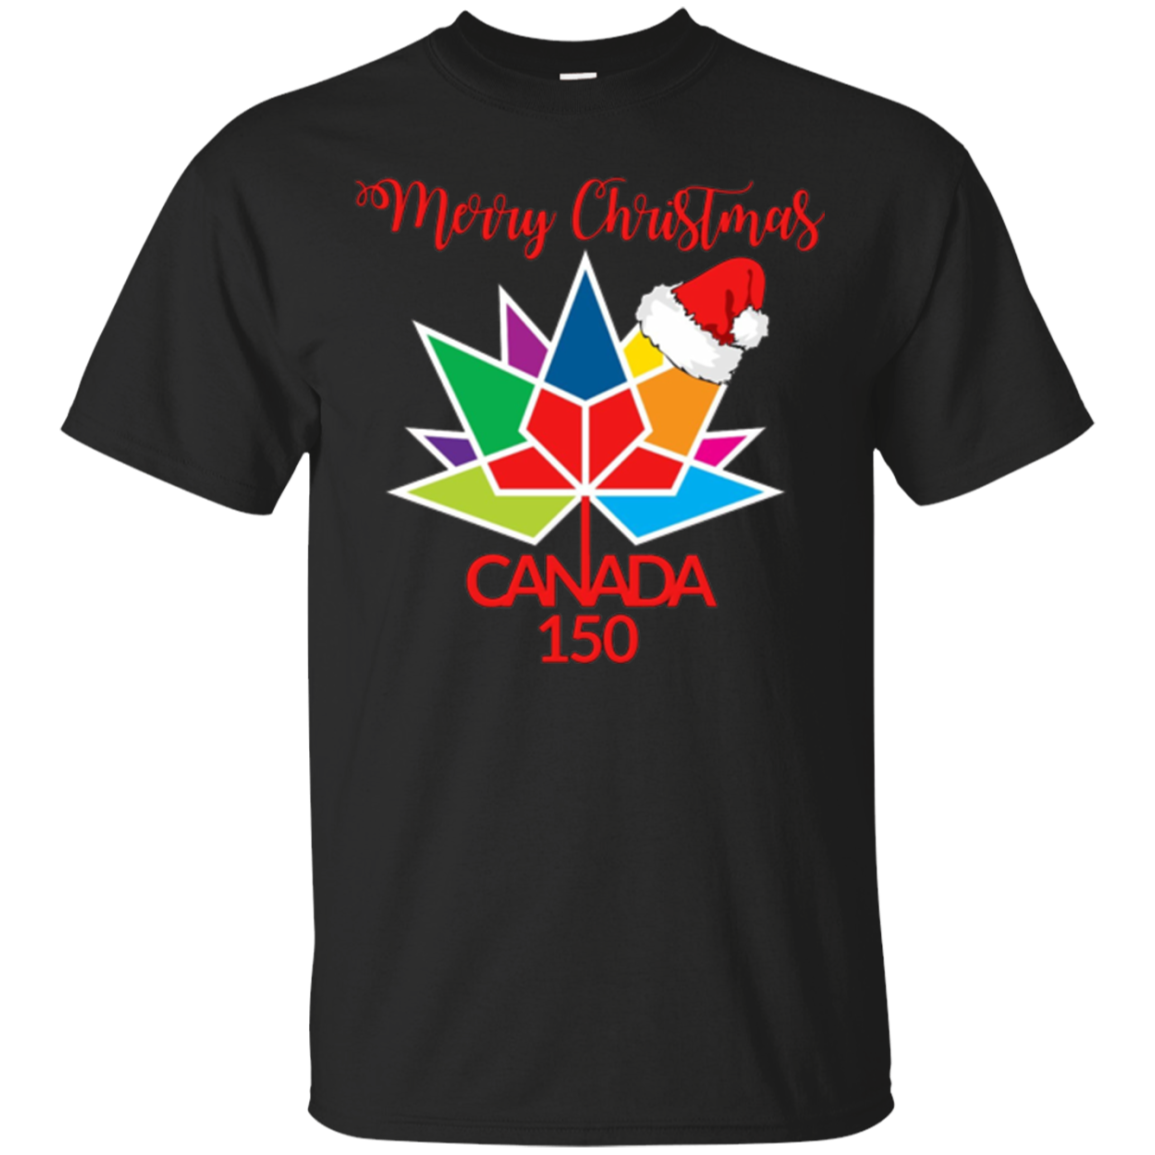 Merry Christmas Canada 150 T Shirt